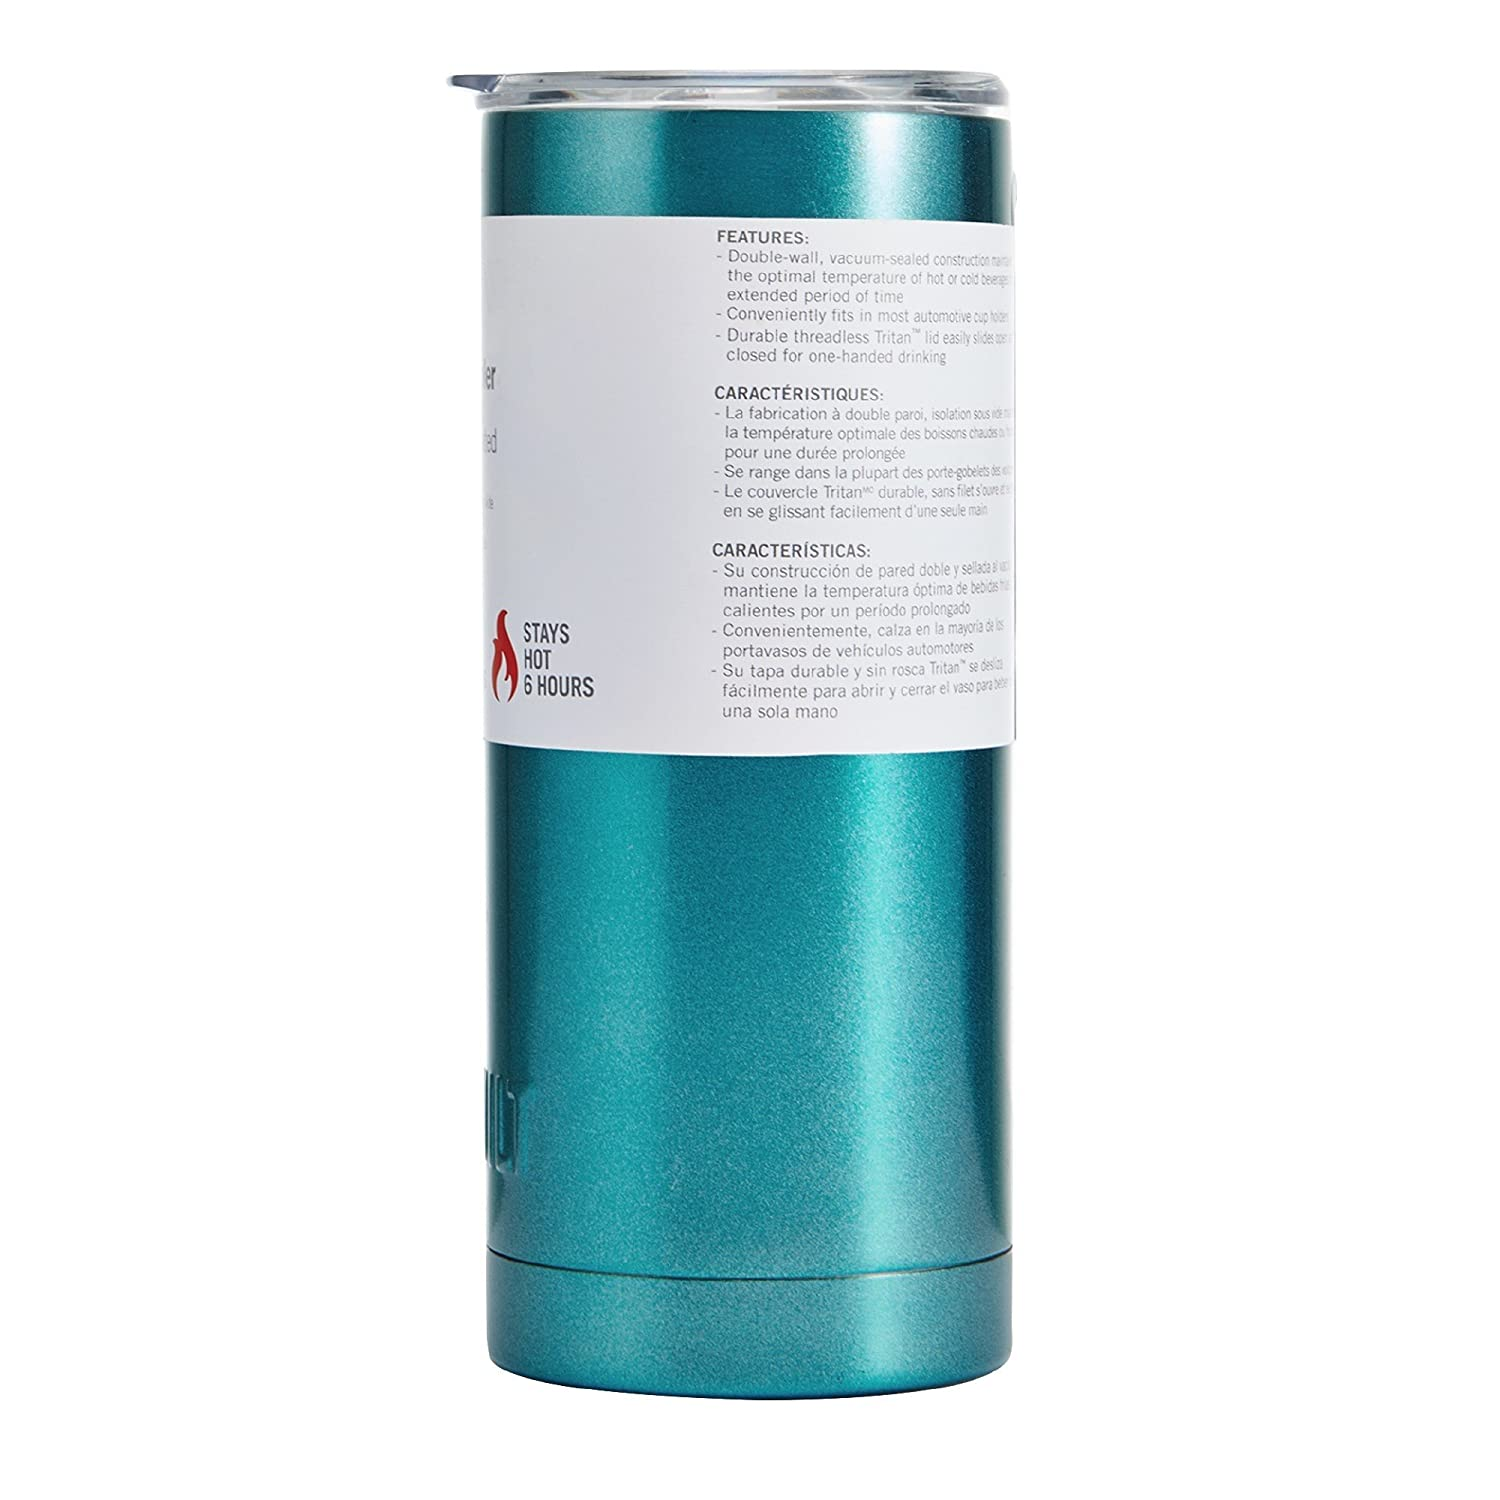 Amazon.com | Built Double Wall Stainless Steel Vacuum Insulated Tumbler, 20 Oz Metallic Teal: Tumblers & Water Glasses